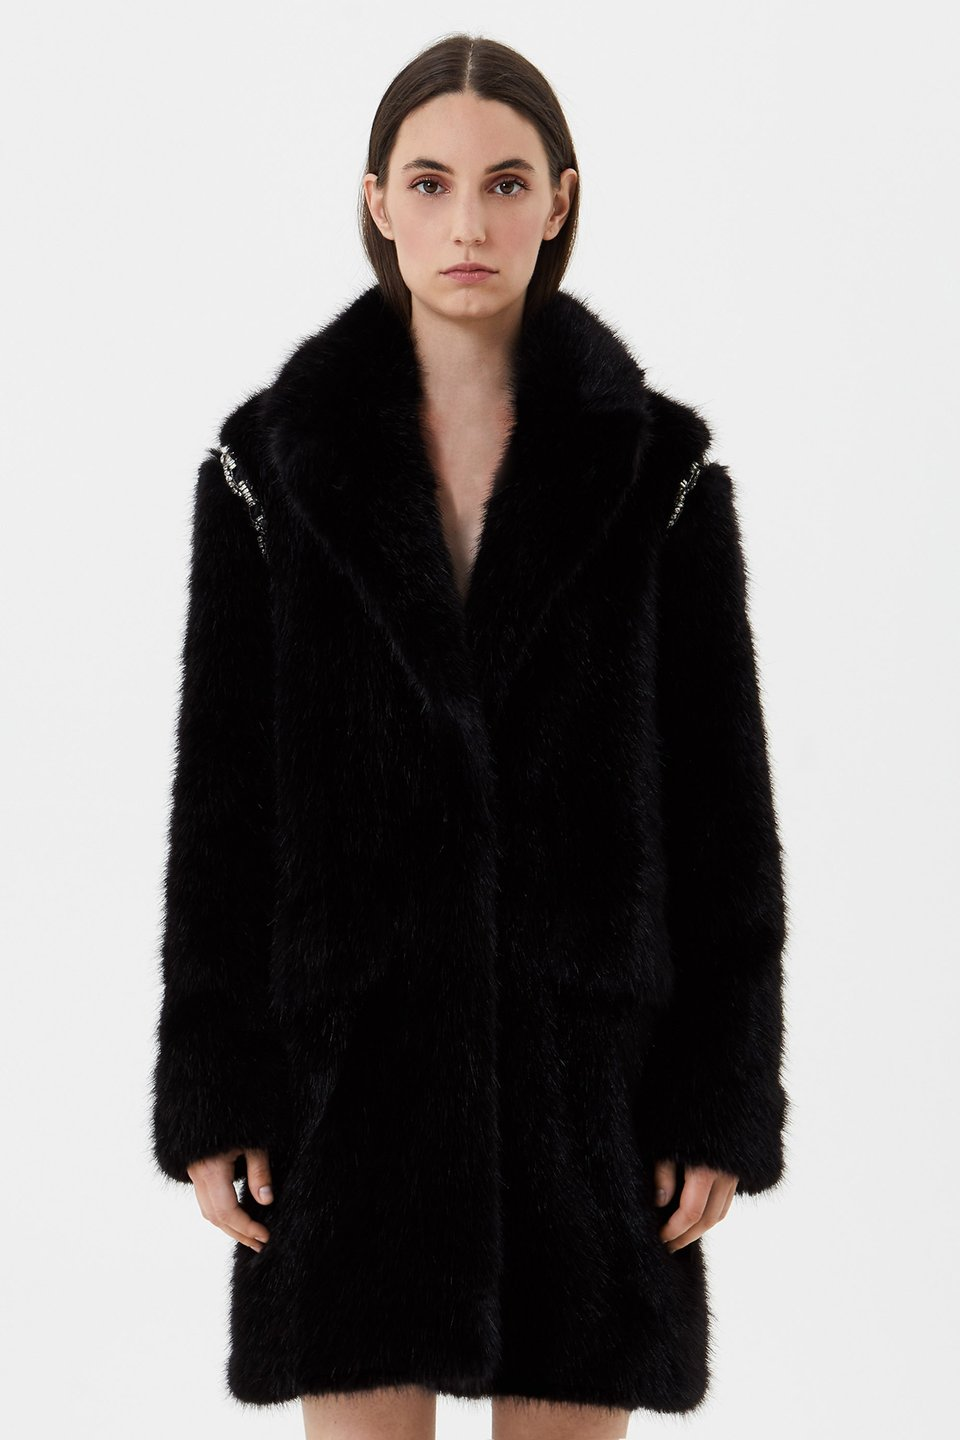 Faux fur coat with rhinestone embroidery